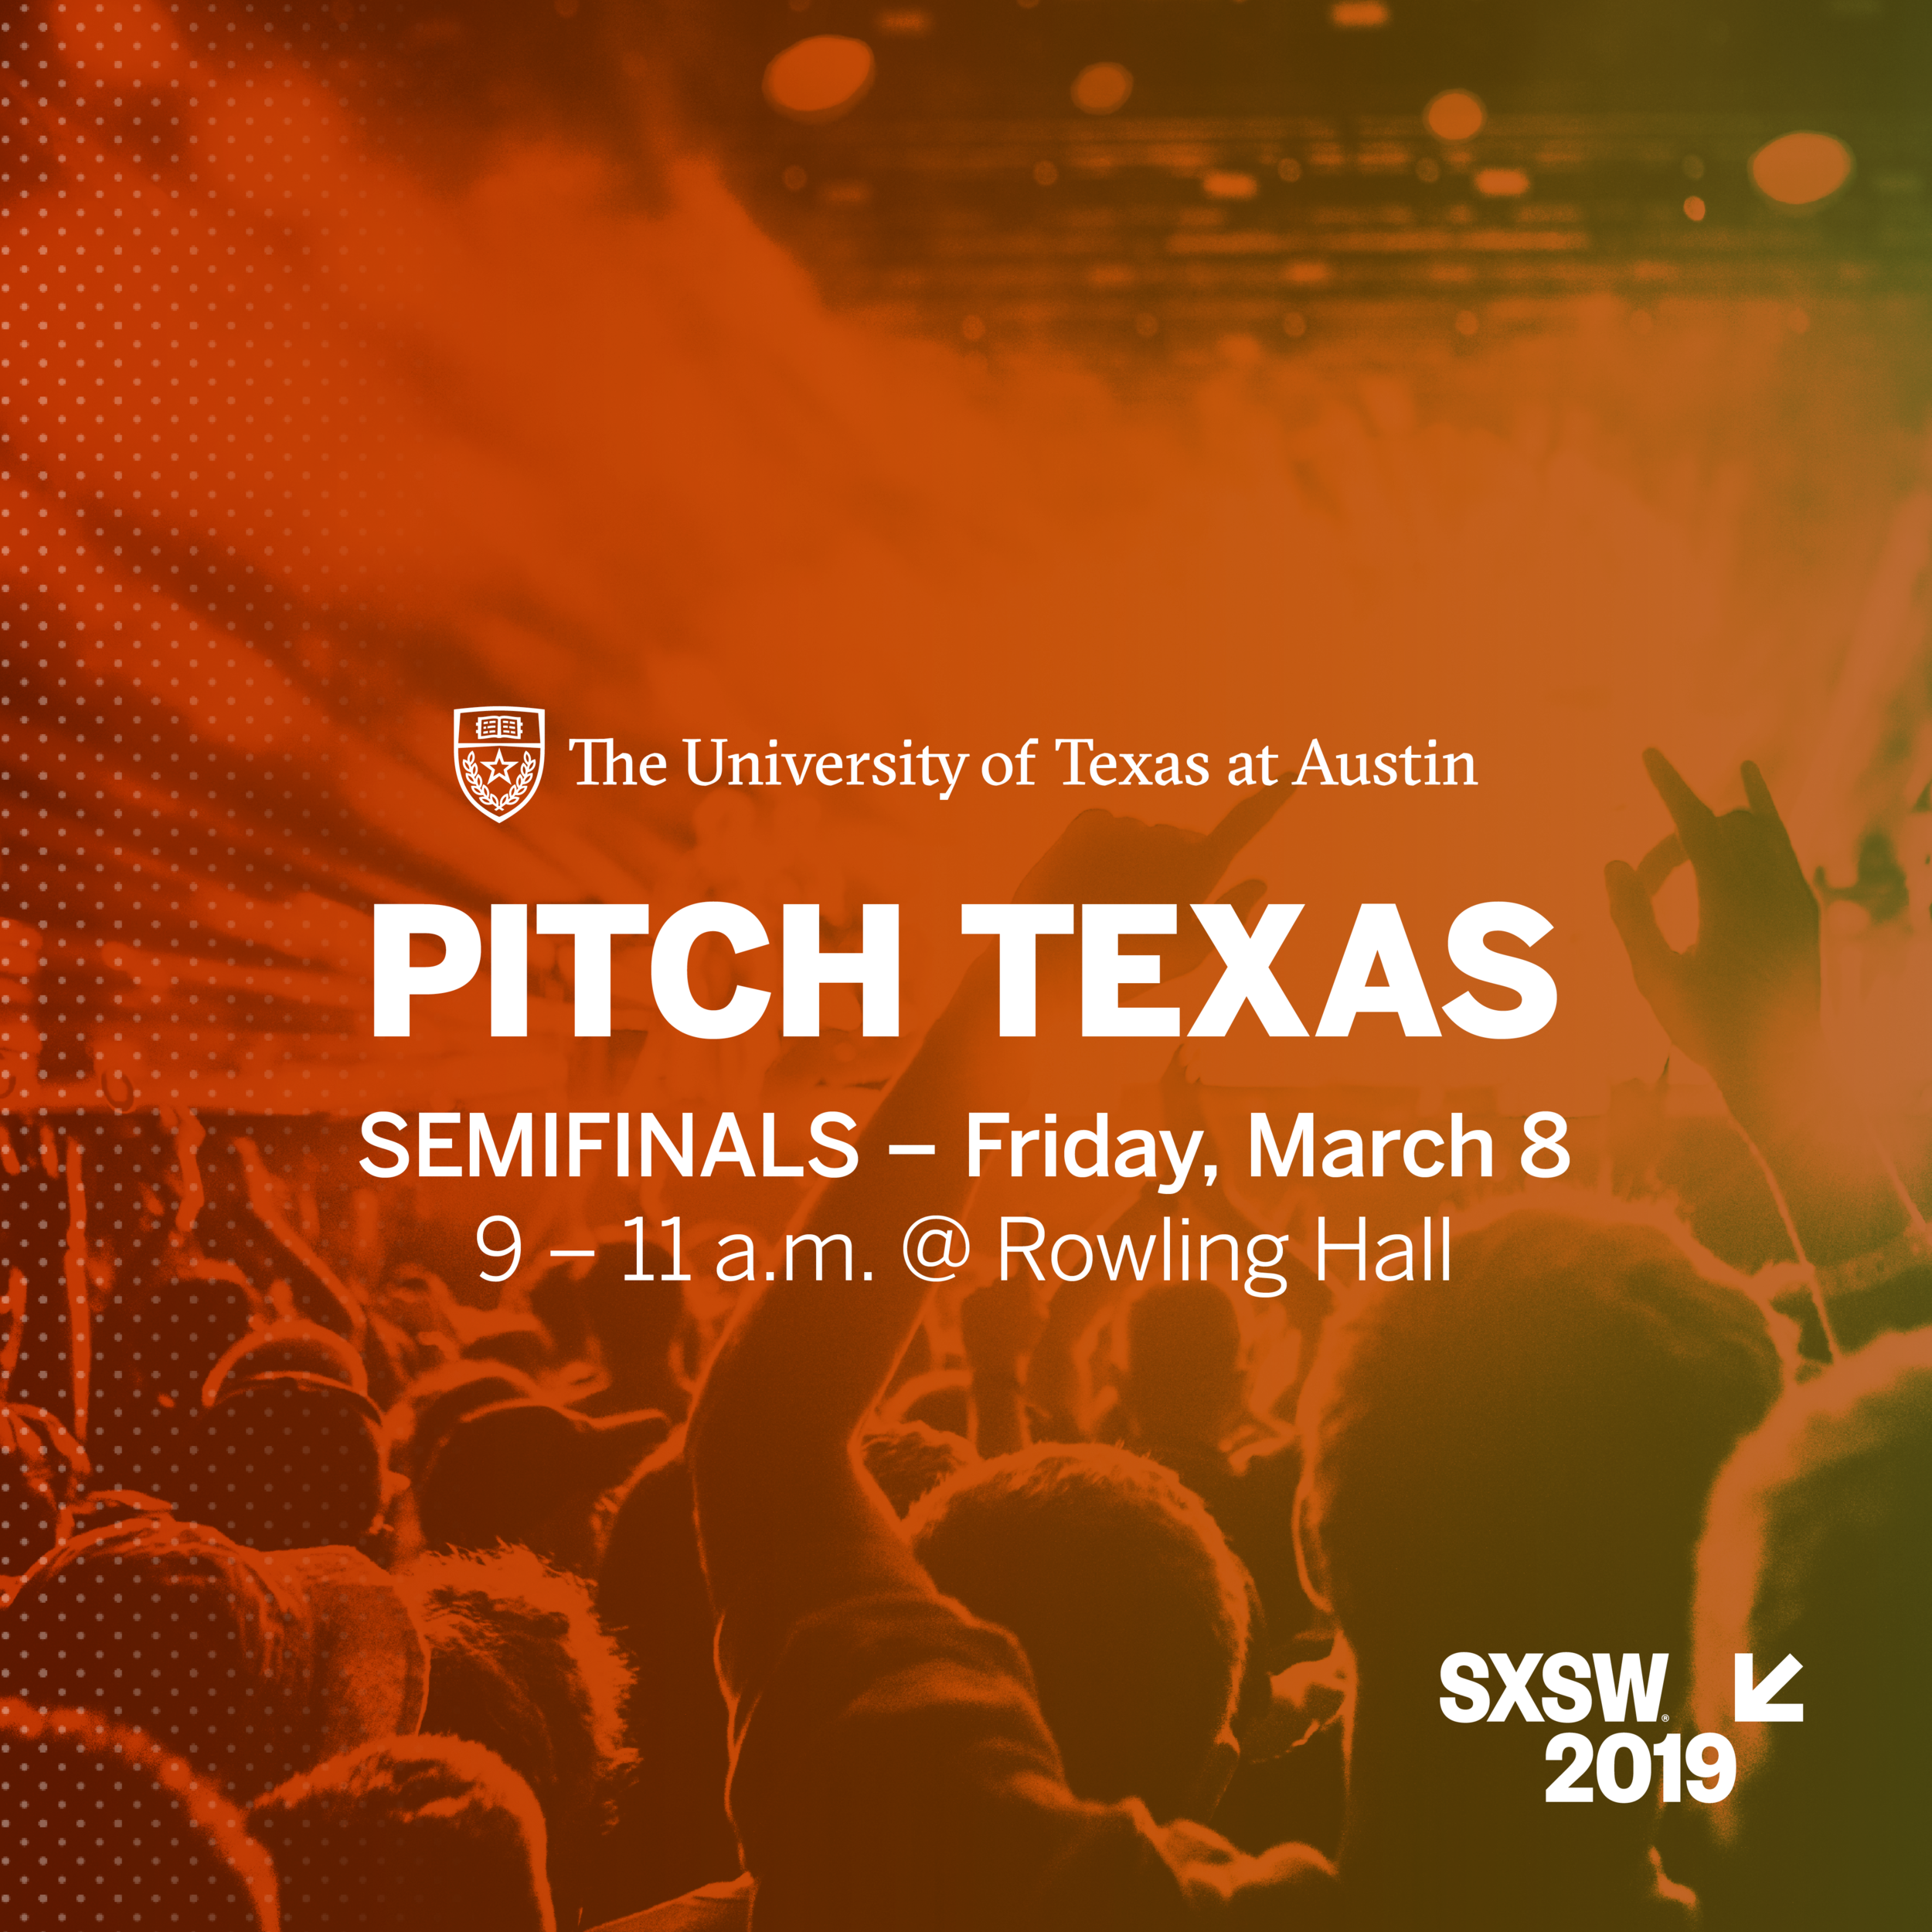 2019_PitchTexas_Semi_Location_Instagram_1080x1080.png